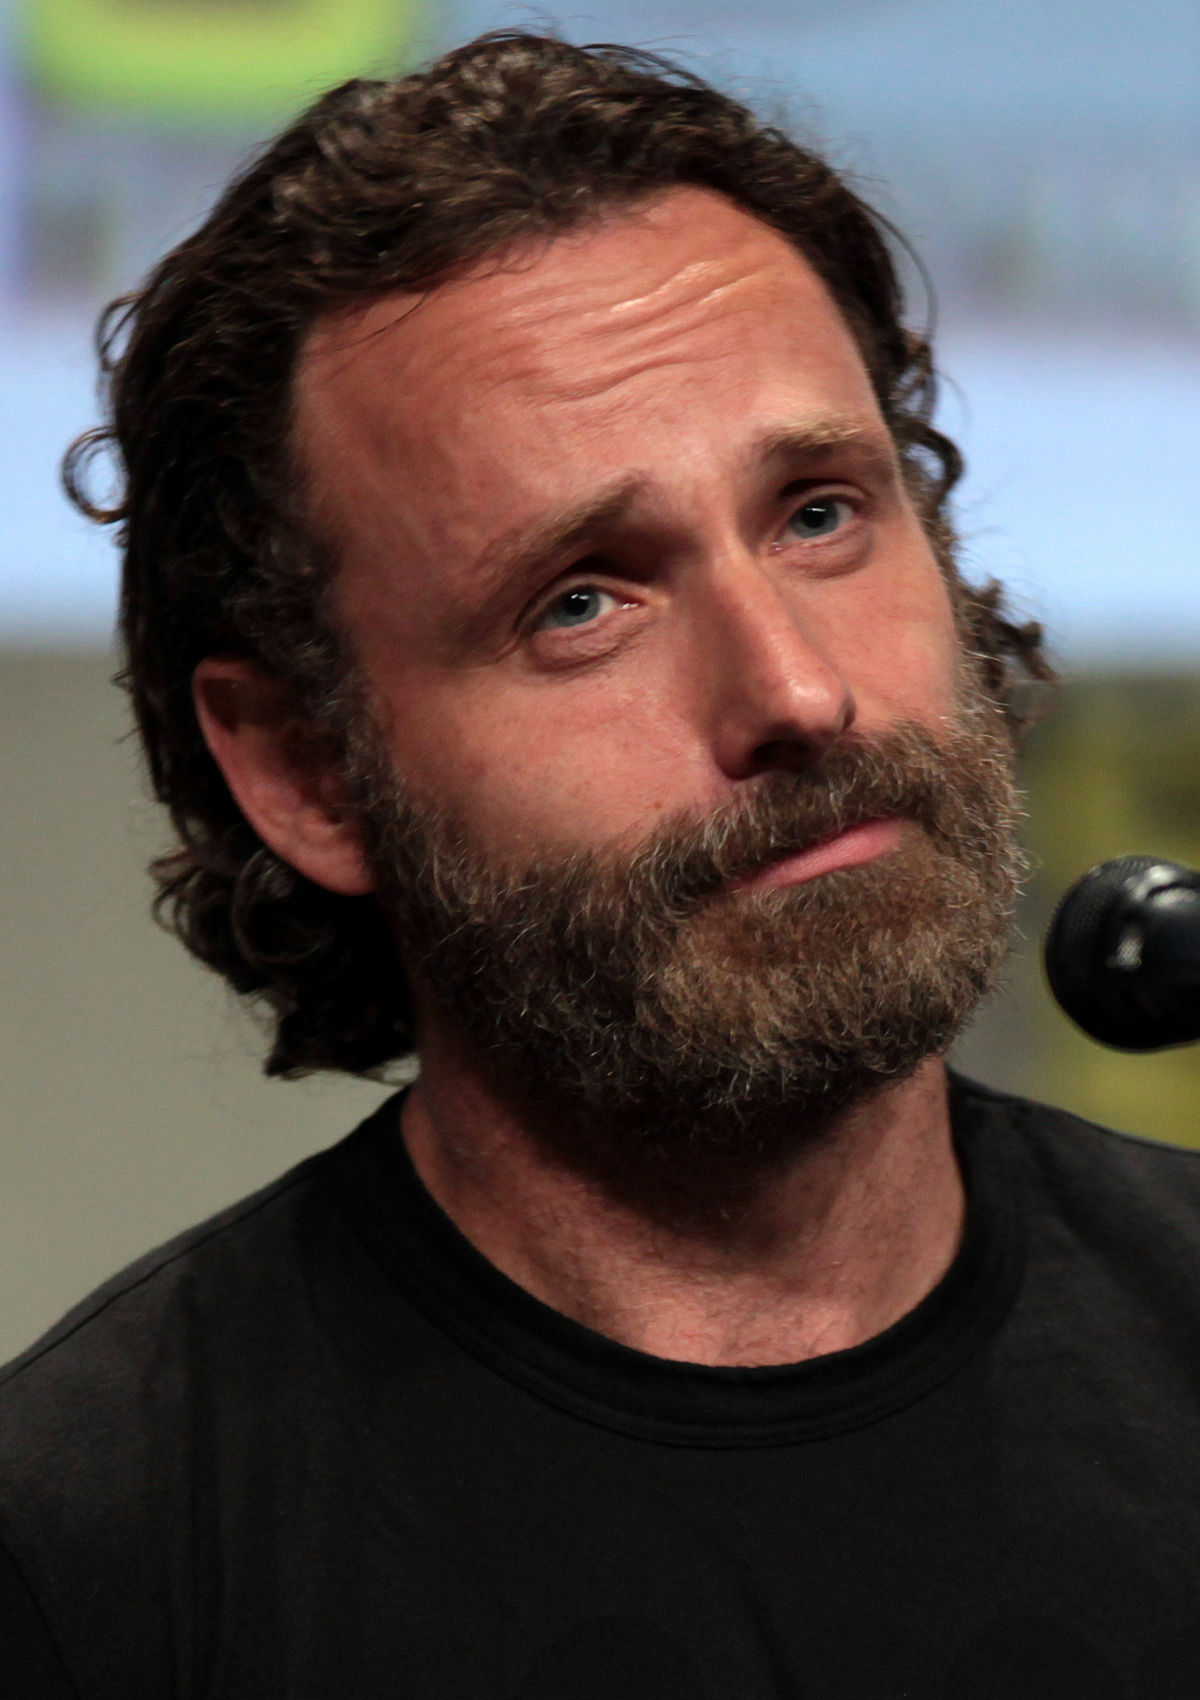 https://upload.wikimedia.org/wikipedia/commons/thumb/c/c0/Andrew_Lincoln_%2814774060355%29_%28cropped%29.jpg/1200px-Andrew_Lincoln_%2814774060355%29_%28cropped%29.jpg